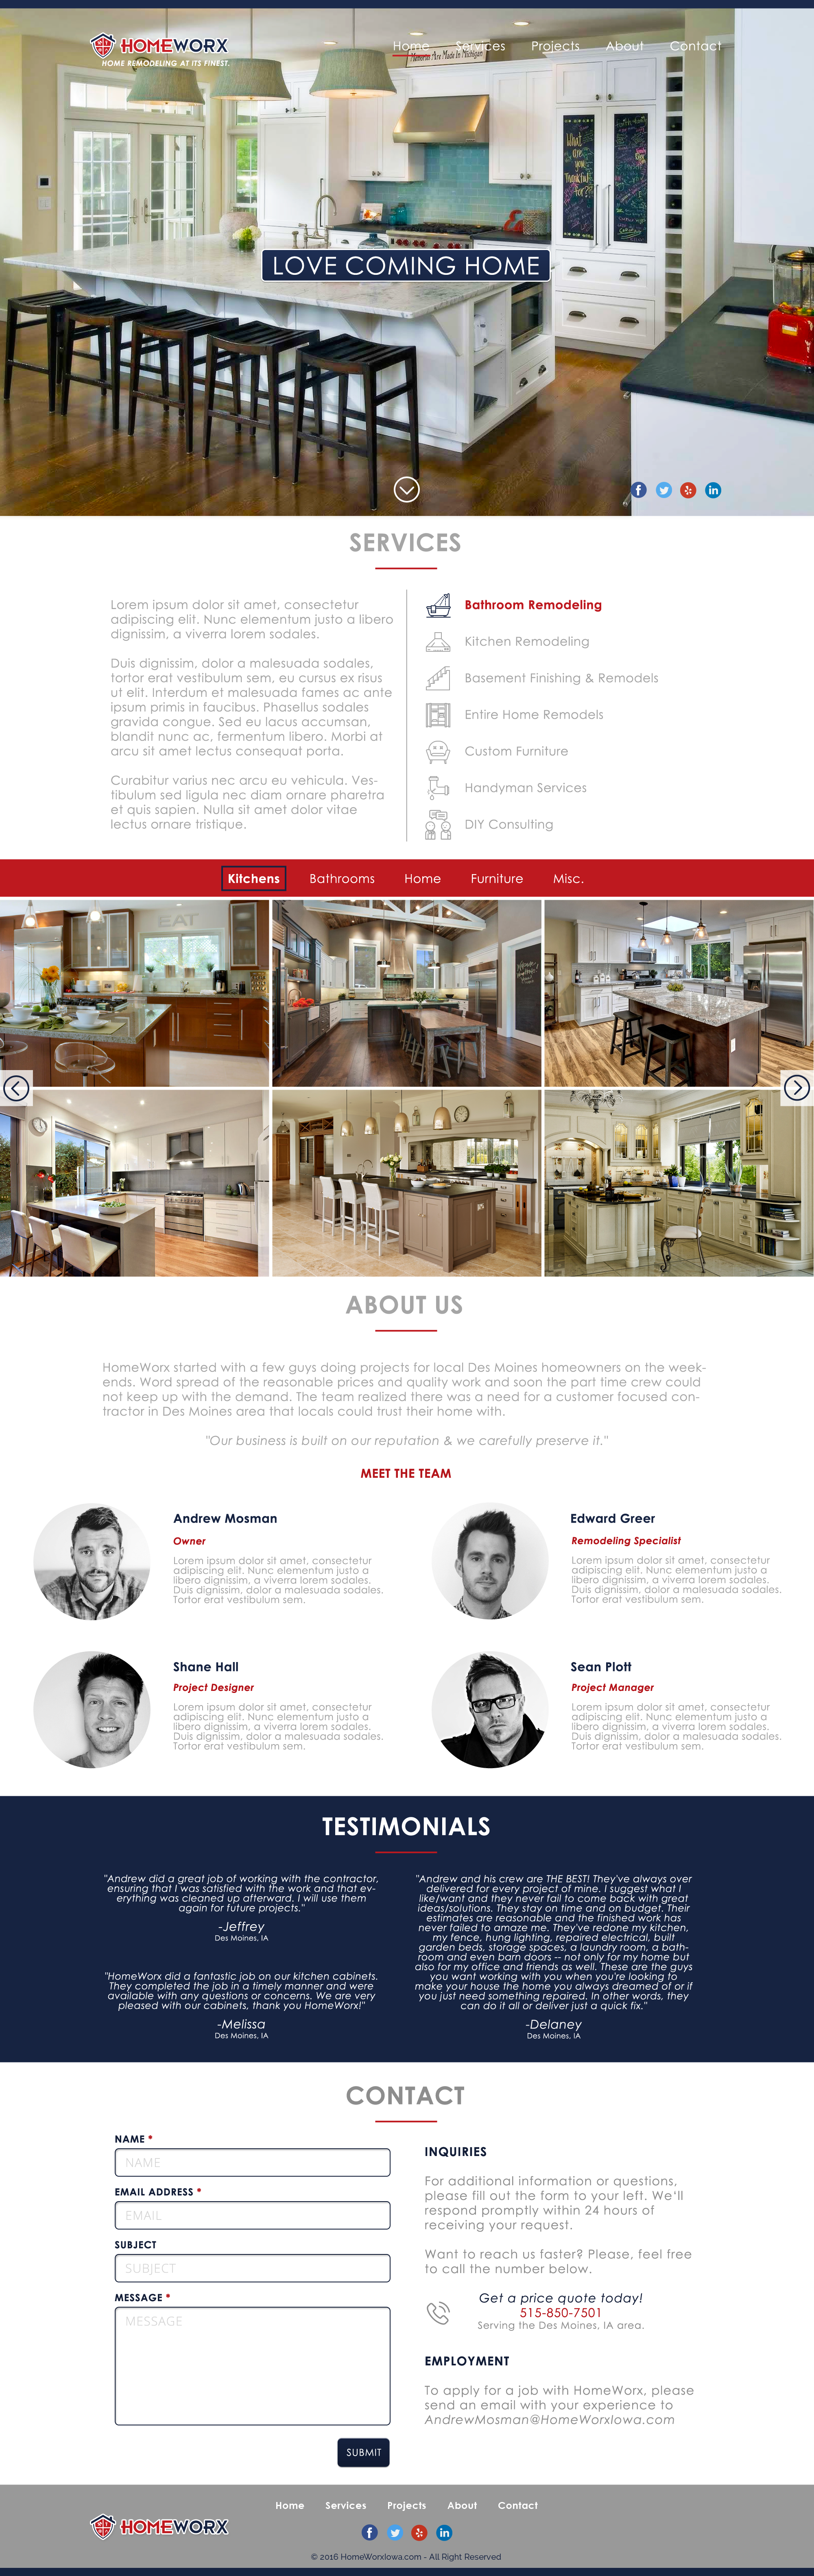 website landing page for remodeling company squadhelp